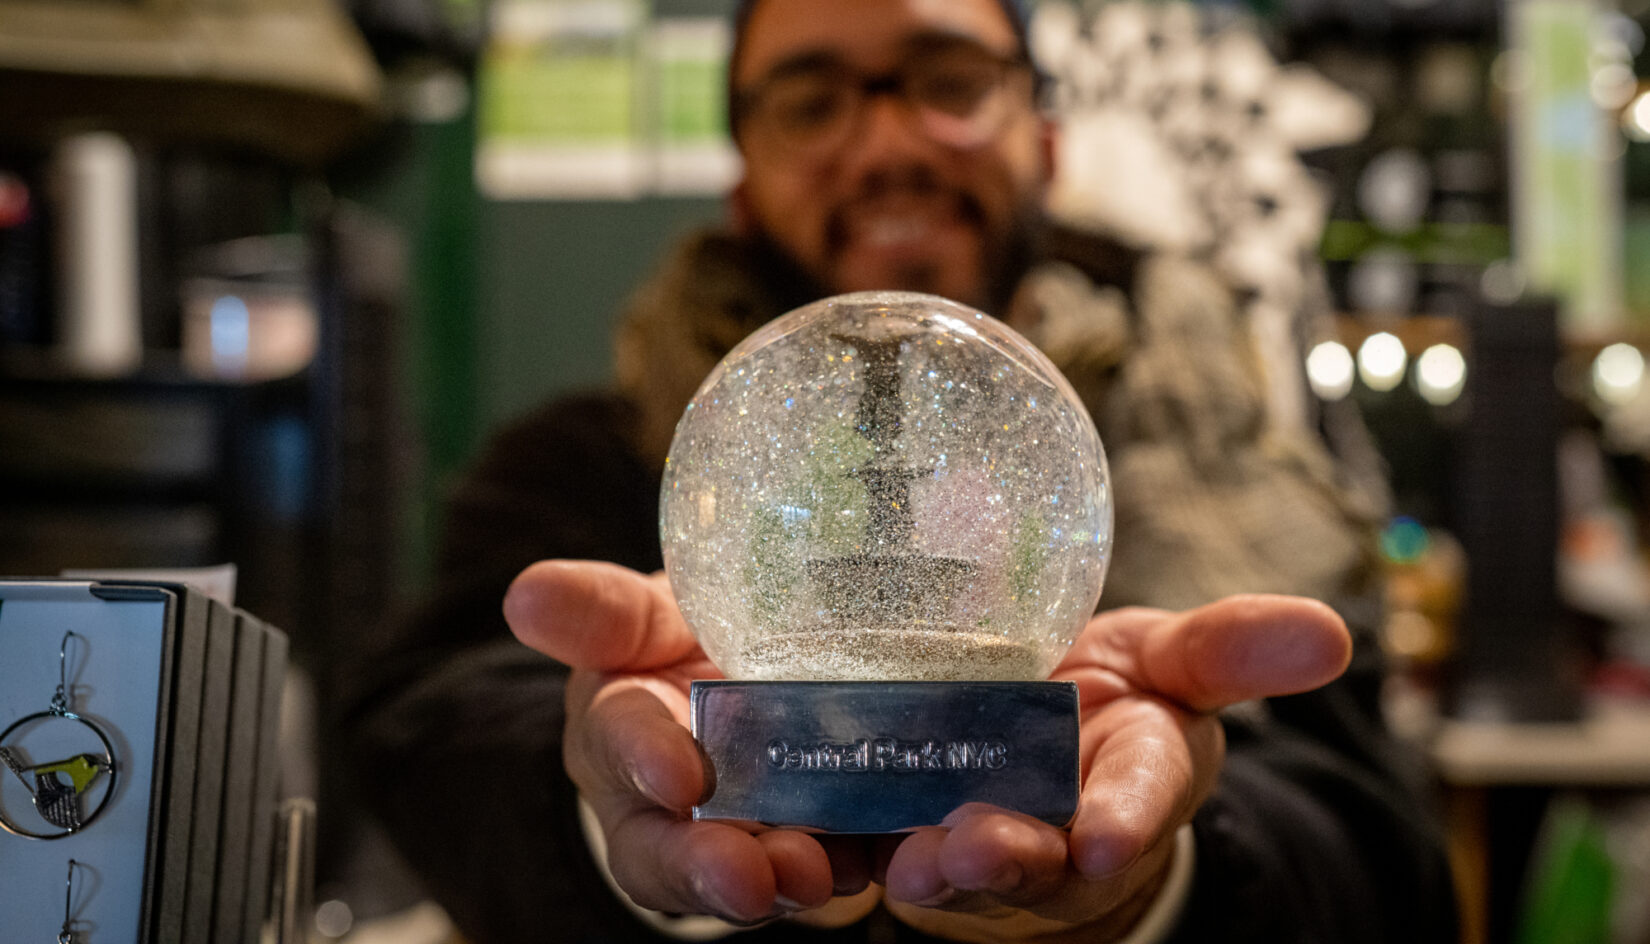 Close-up of hands holding a snow globe of Bethesda Fountain